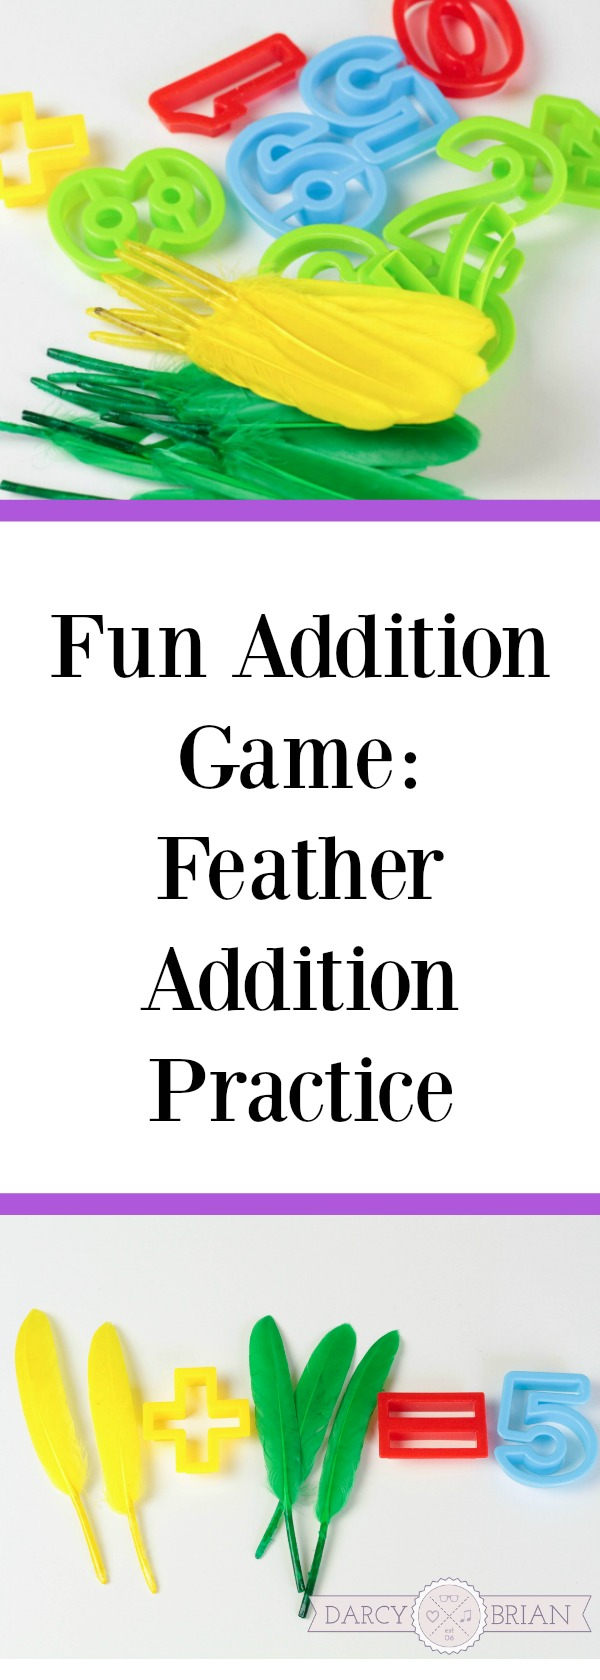 Looking for fall or Thanksgiving themed math activities for kids? This Fun Feather Addition Game is a great way to combine the season and learning! Check out our tips for how to use common items to teach your children! #math #kidsactivities #homeschool #addition